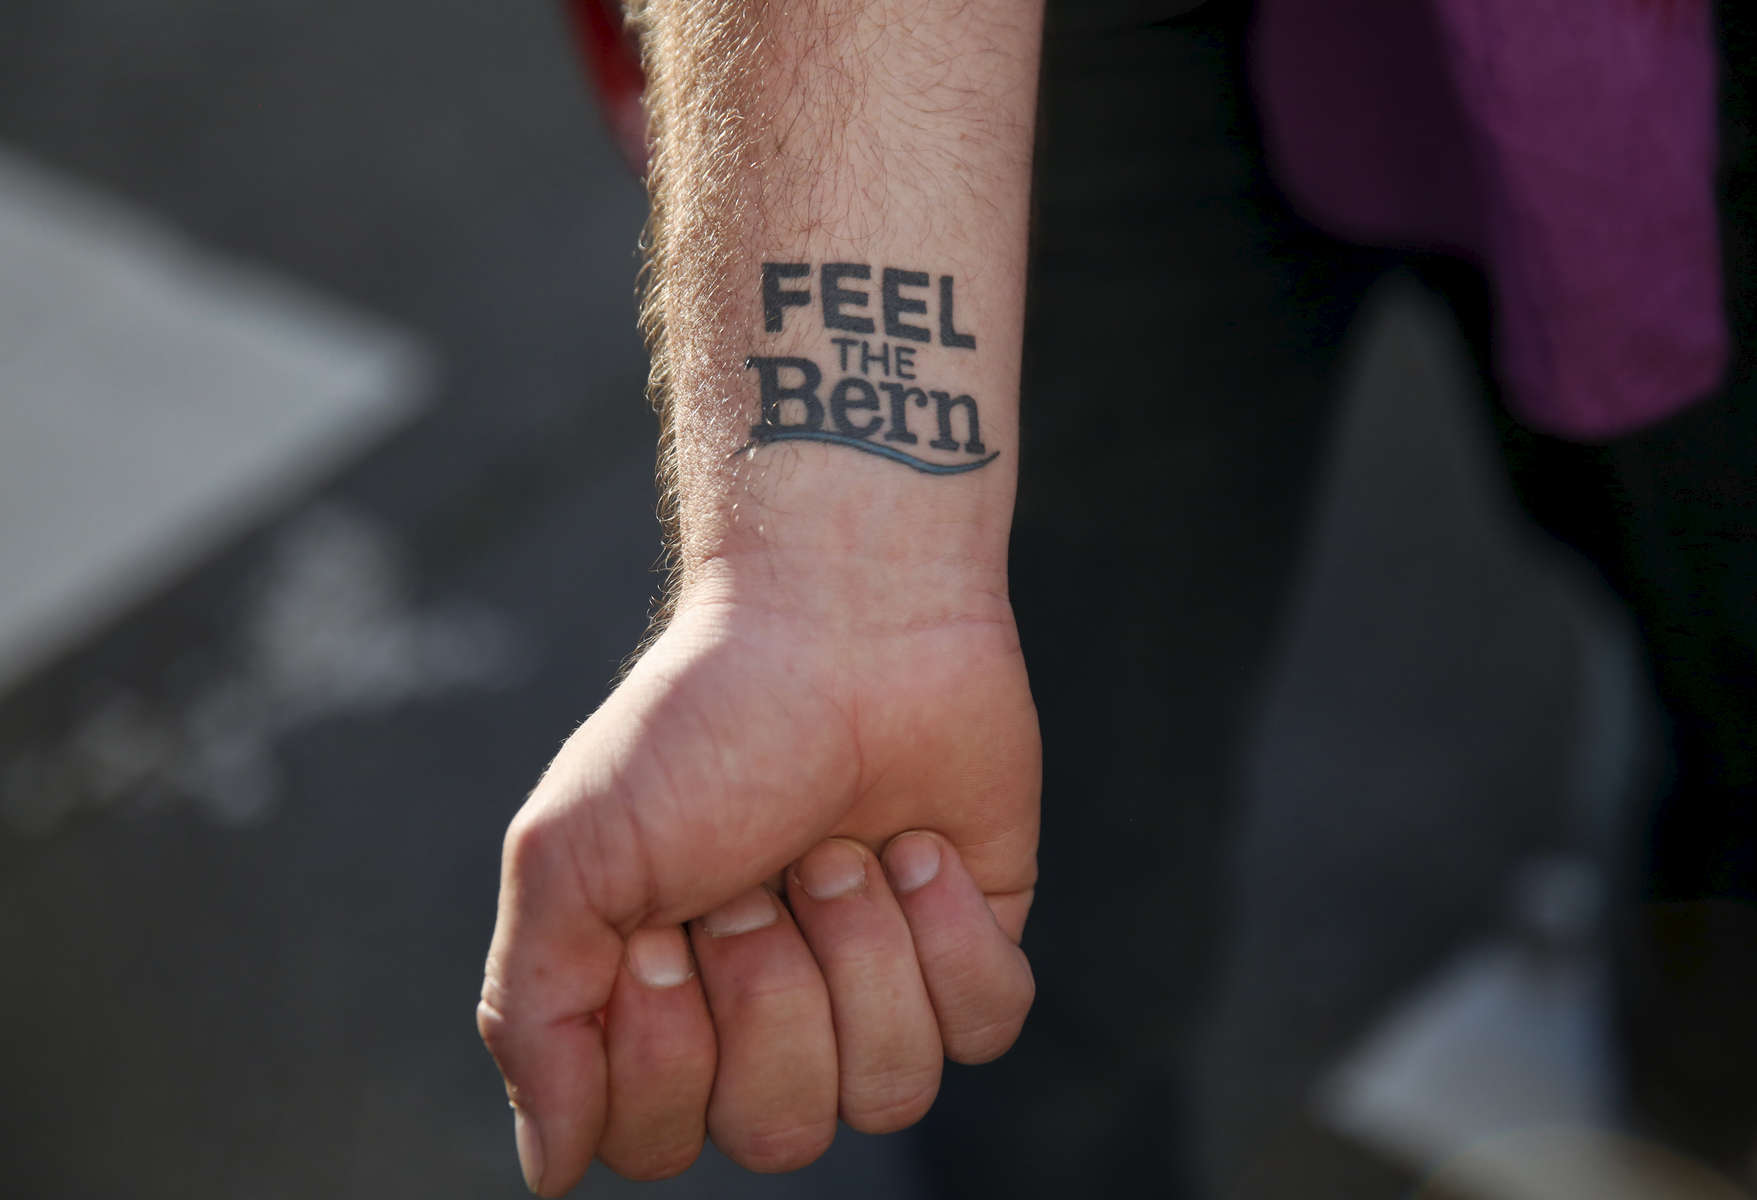 Christopher Ray of San Francisco shows off his Bernie Sanders tattoo during a Hillary Clinton fundraising protest in Nob Hill April 15, 2016 in San Francisco, Calif. The fundraiser was attended by George Clooney, among others. Dozens of protesters showed up and marched around the block to each entrance where police had set up barricades.